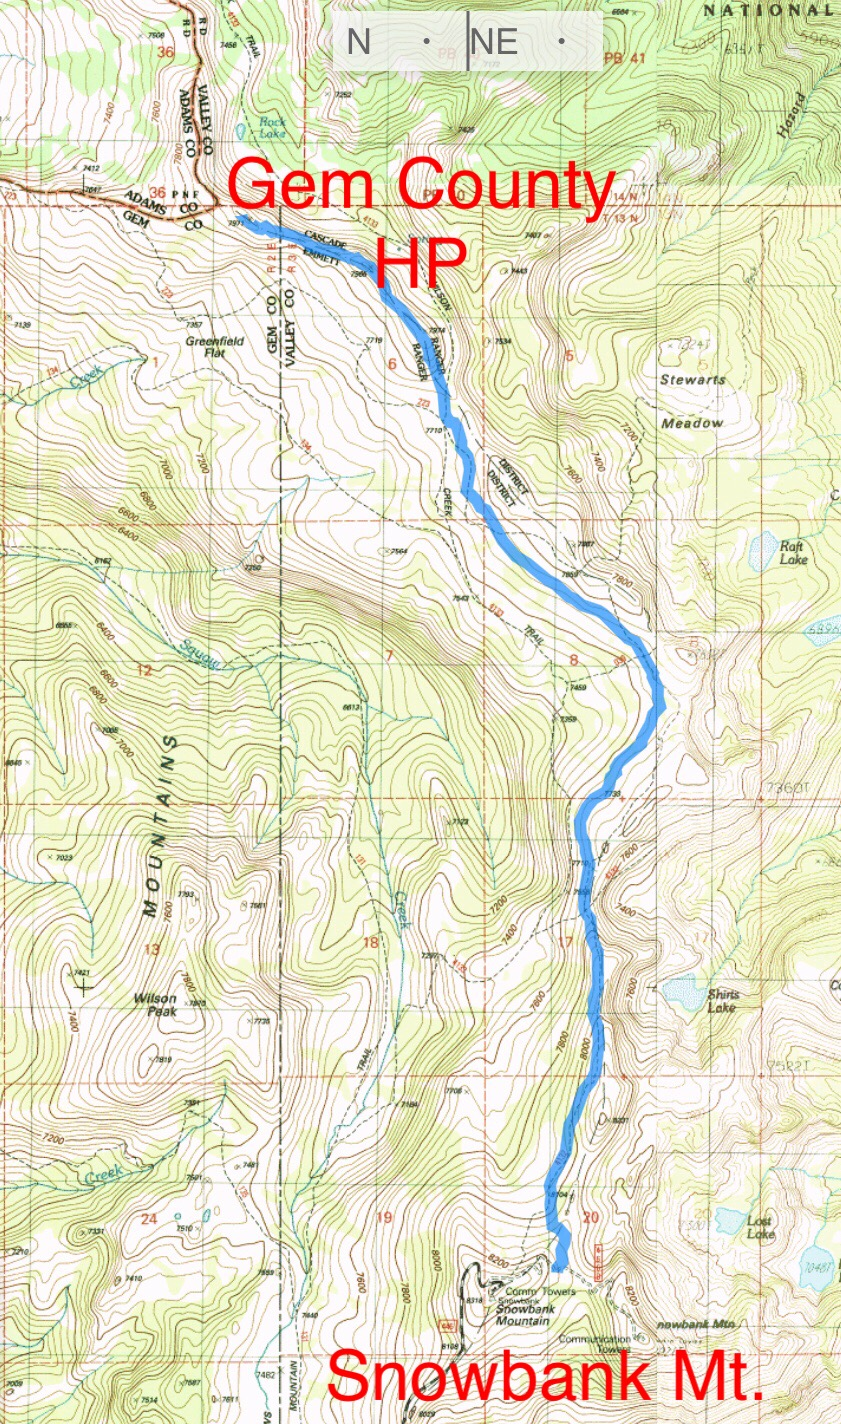 My GPS track using the alternative route description. The route to the summit covered 4.8 miles with 506 feet of gain 727 feet of loss. Of. Course on the return trip you will have 727 feet of gain to get back to your vehicle.